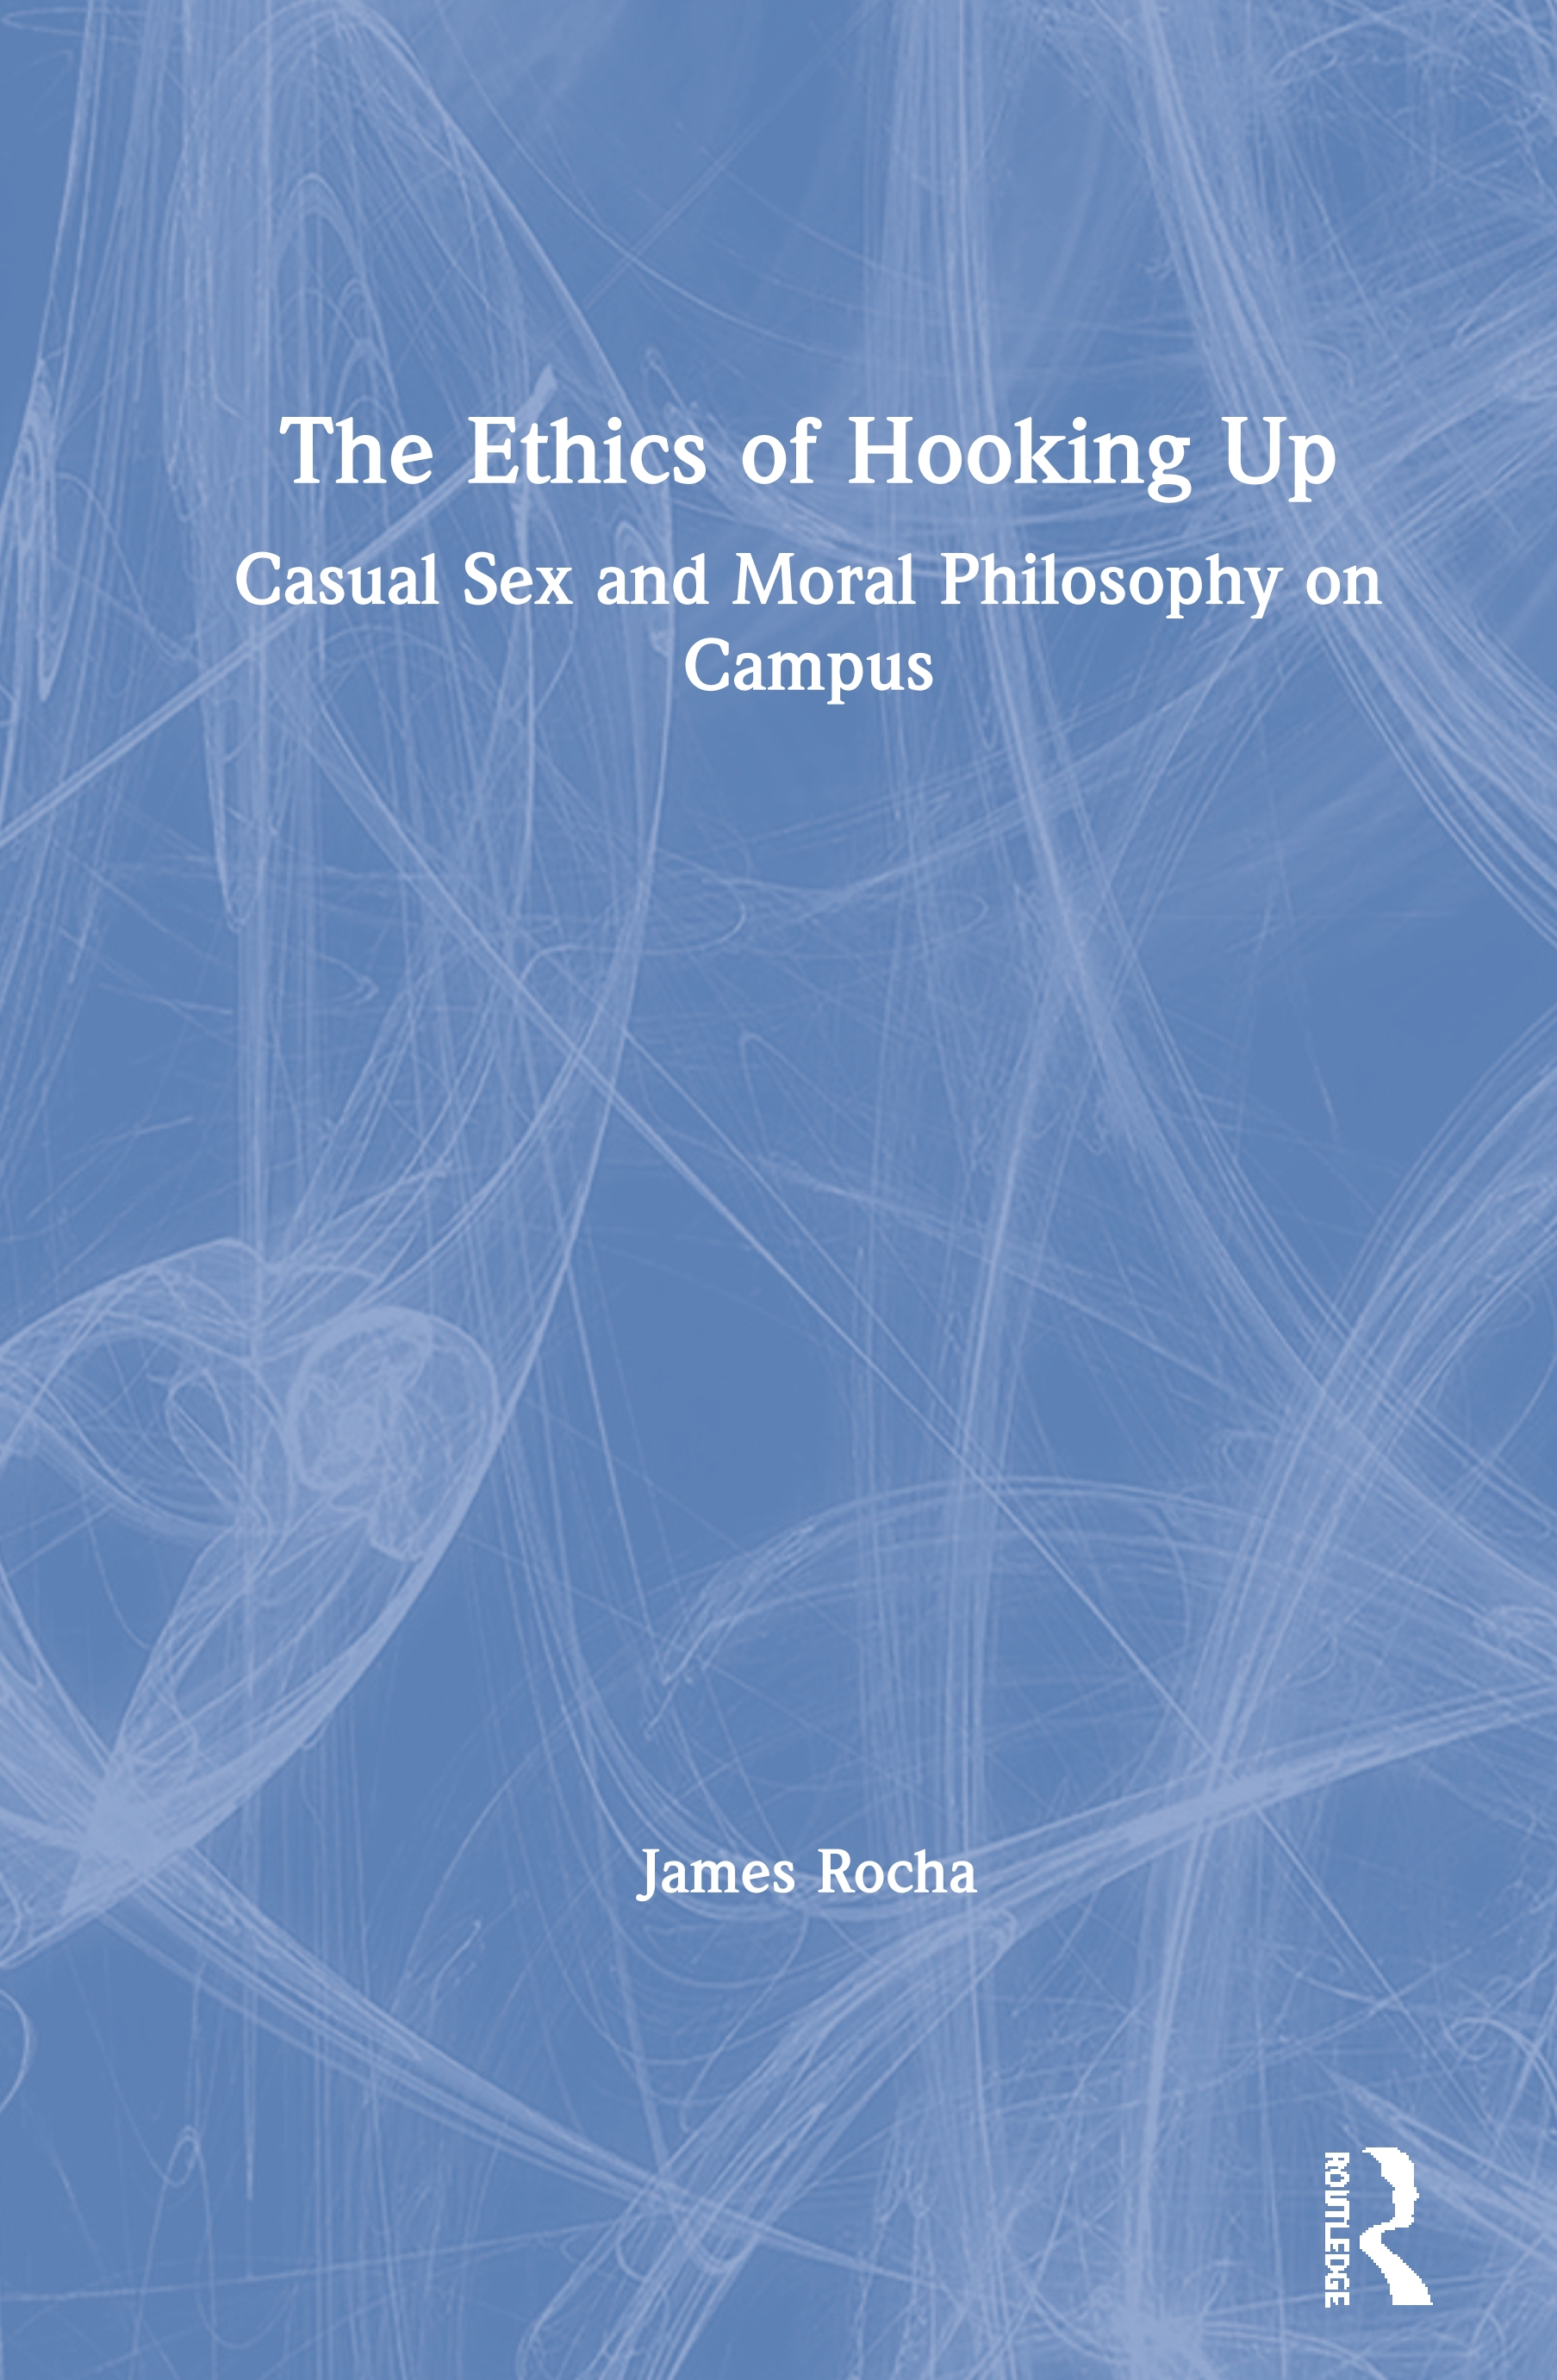 The Ethics of Hooking Up: Casual Sex and Moral Philosophy on Campus book cover